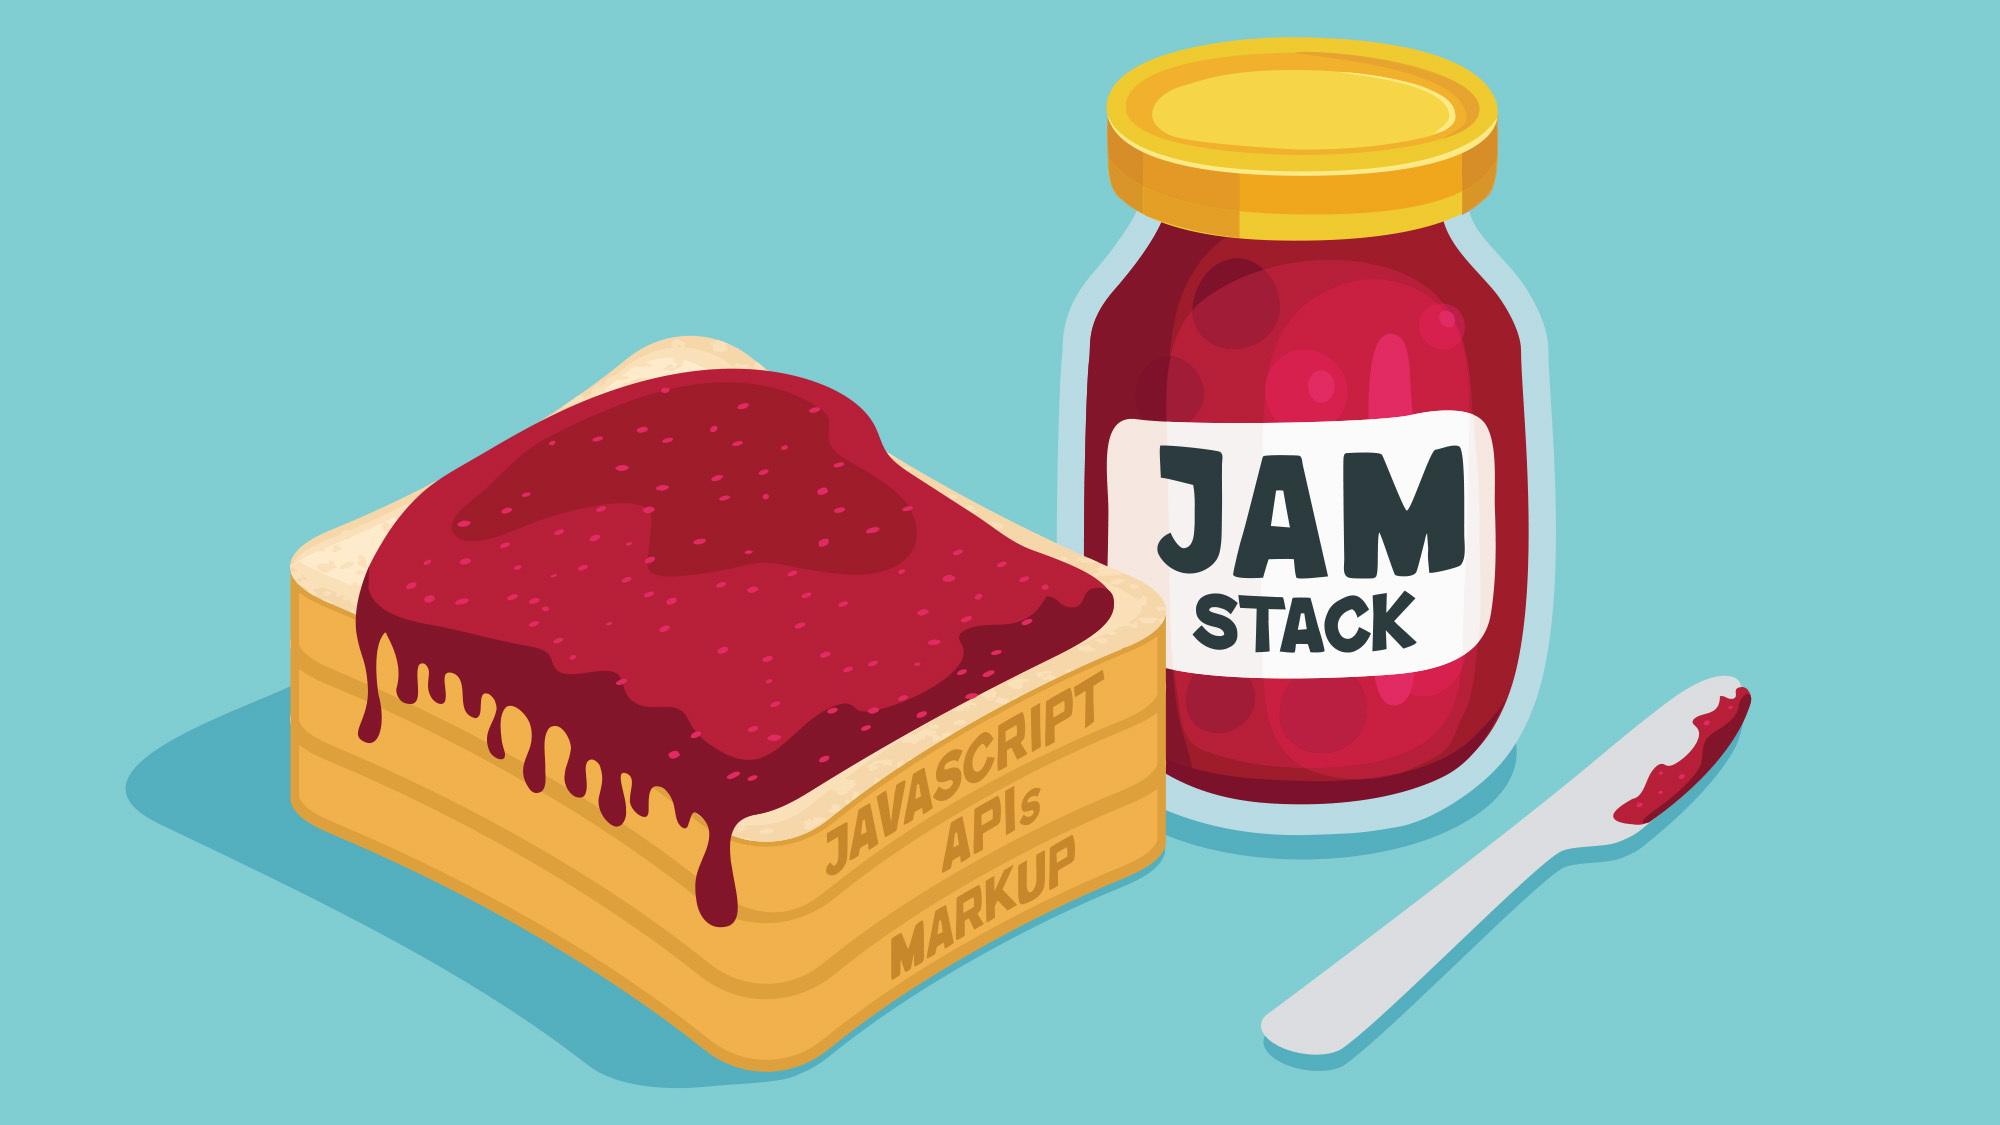 Jar of Jam and a toast